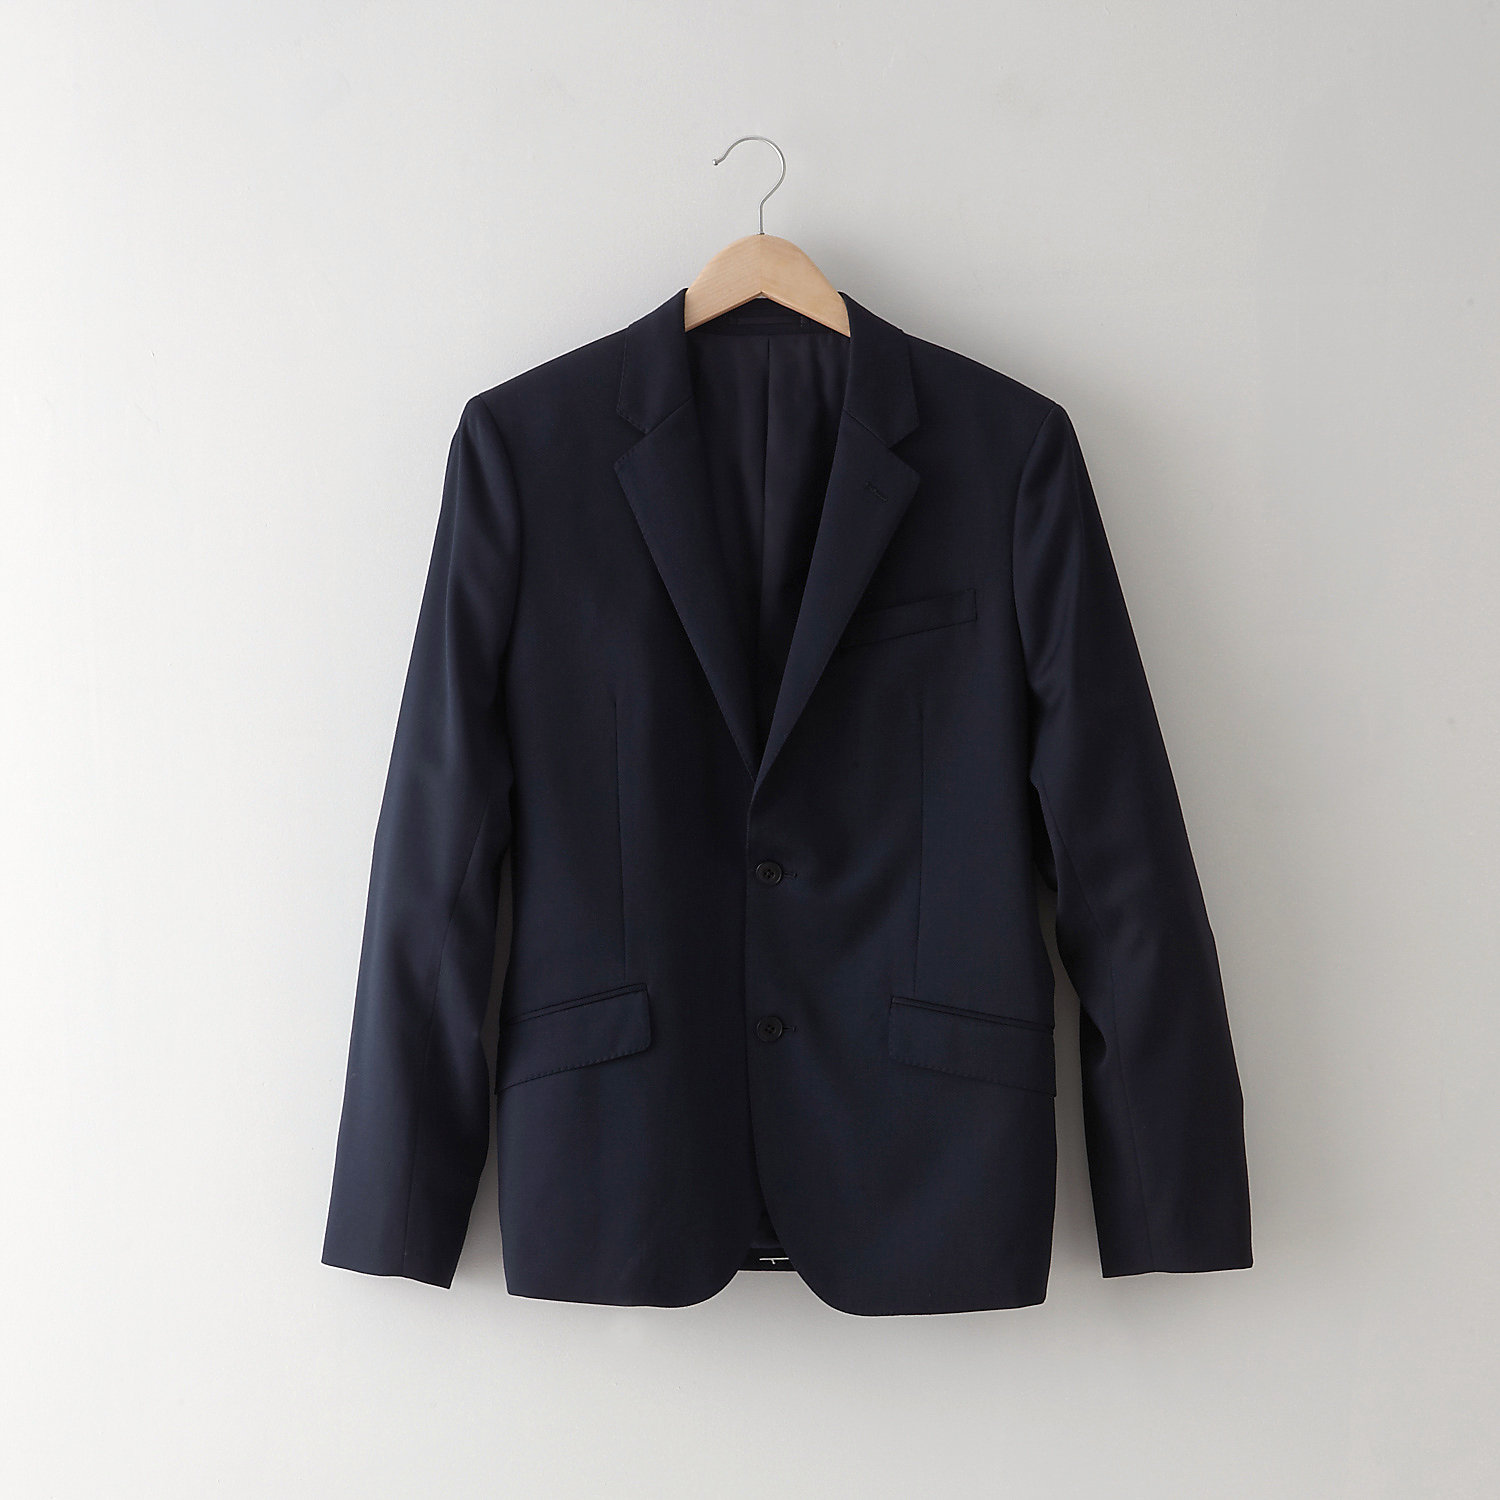 FENTON SUIT JACKET